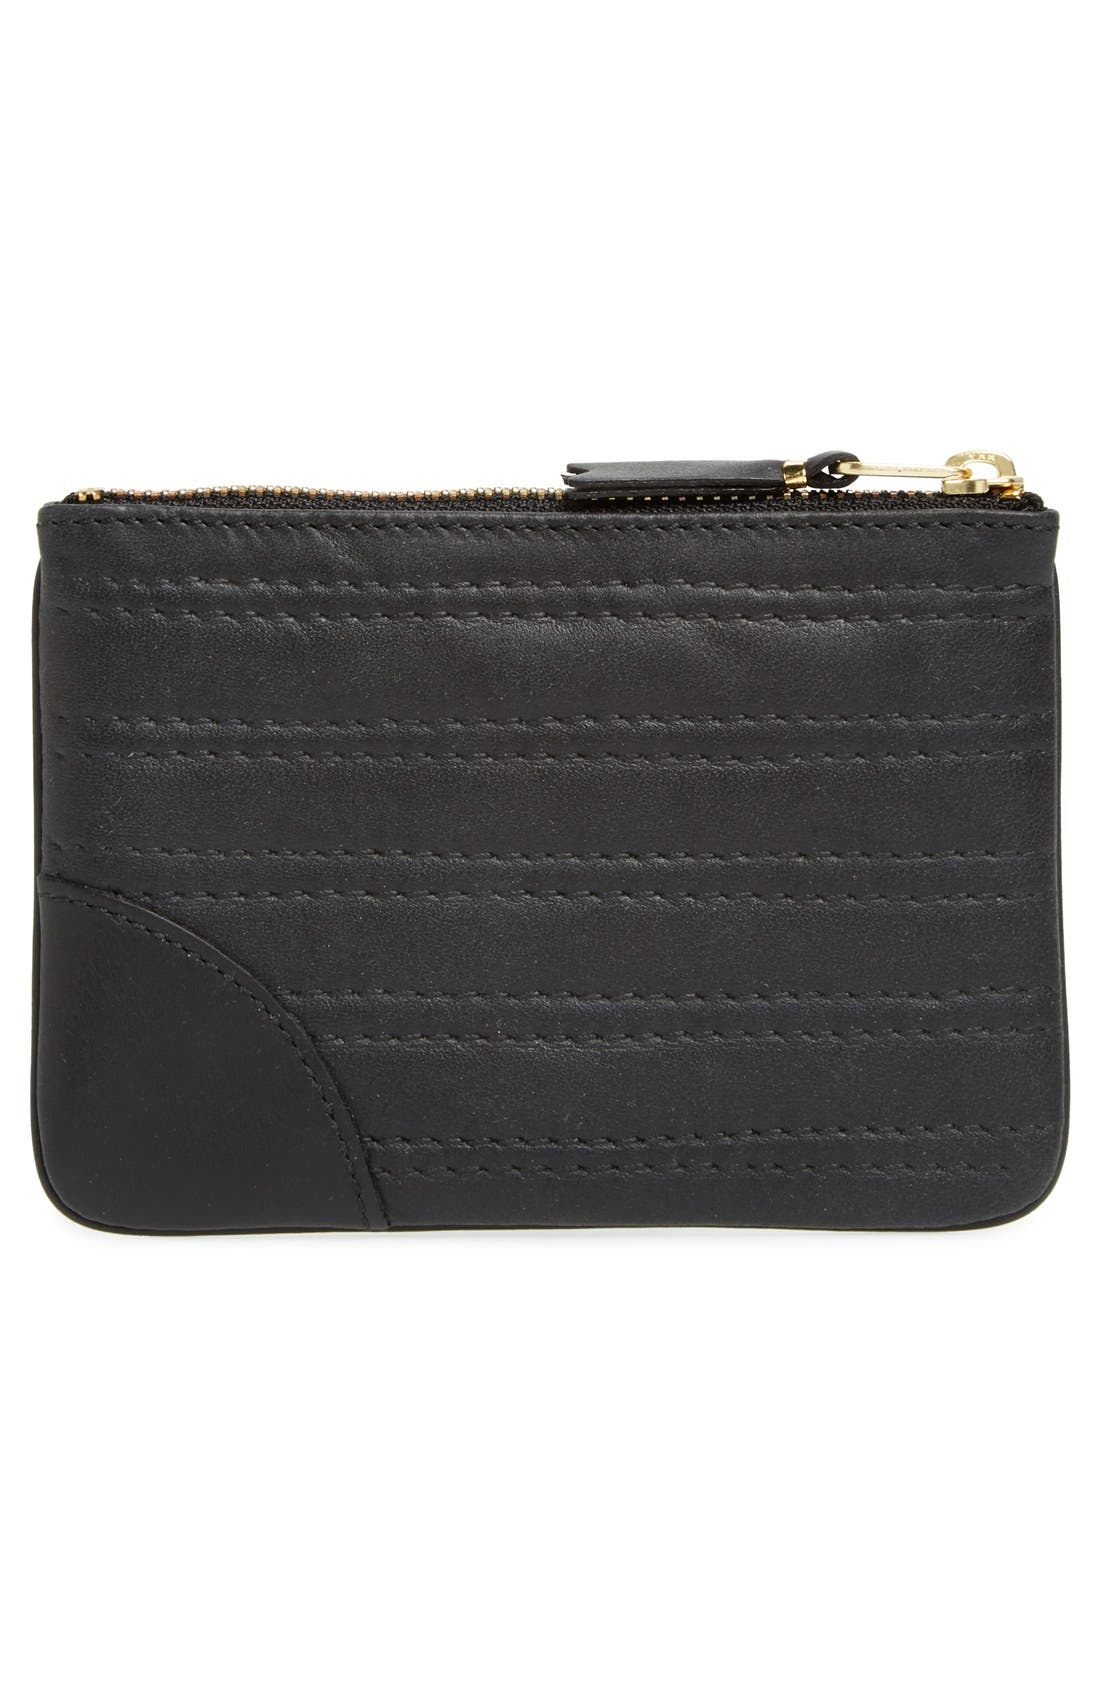 Embossed Leather Top Zip Pouch Wallet,                             Alternate thumbnail 2, color,                             001